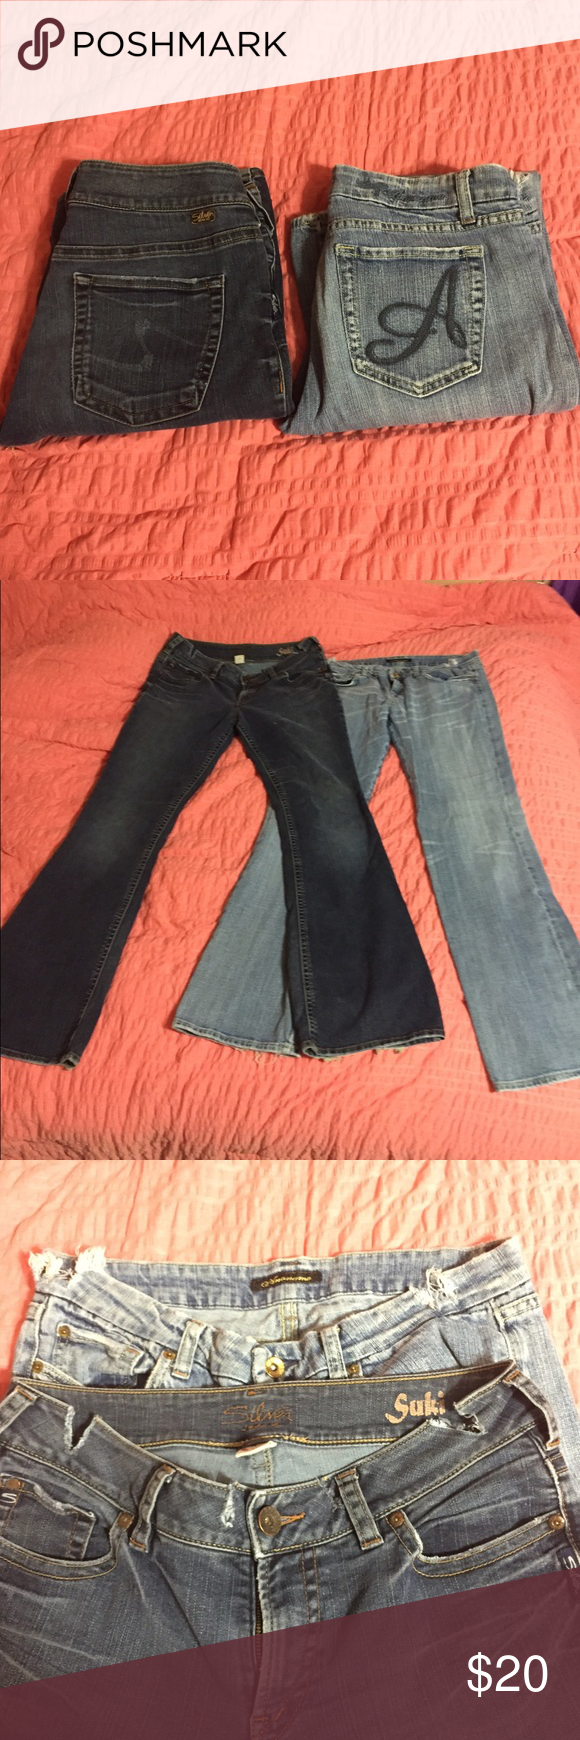 Silver/Anoname Jean bundle 2 Jean bundle. Both size 32/12 Silver brand is slightly more of a flare. Anoname is more of a boot cut. Both pre-loved but in good condition. PLEASE NOTE- these have both been cut in the waist band area. This is why I'm selling them together. I can see the cuts up before I ship if desired. I am willing to sell separate. Let me know if you have any more questions! Silver Jeans Jeans